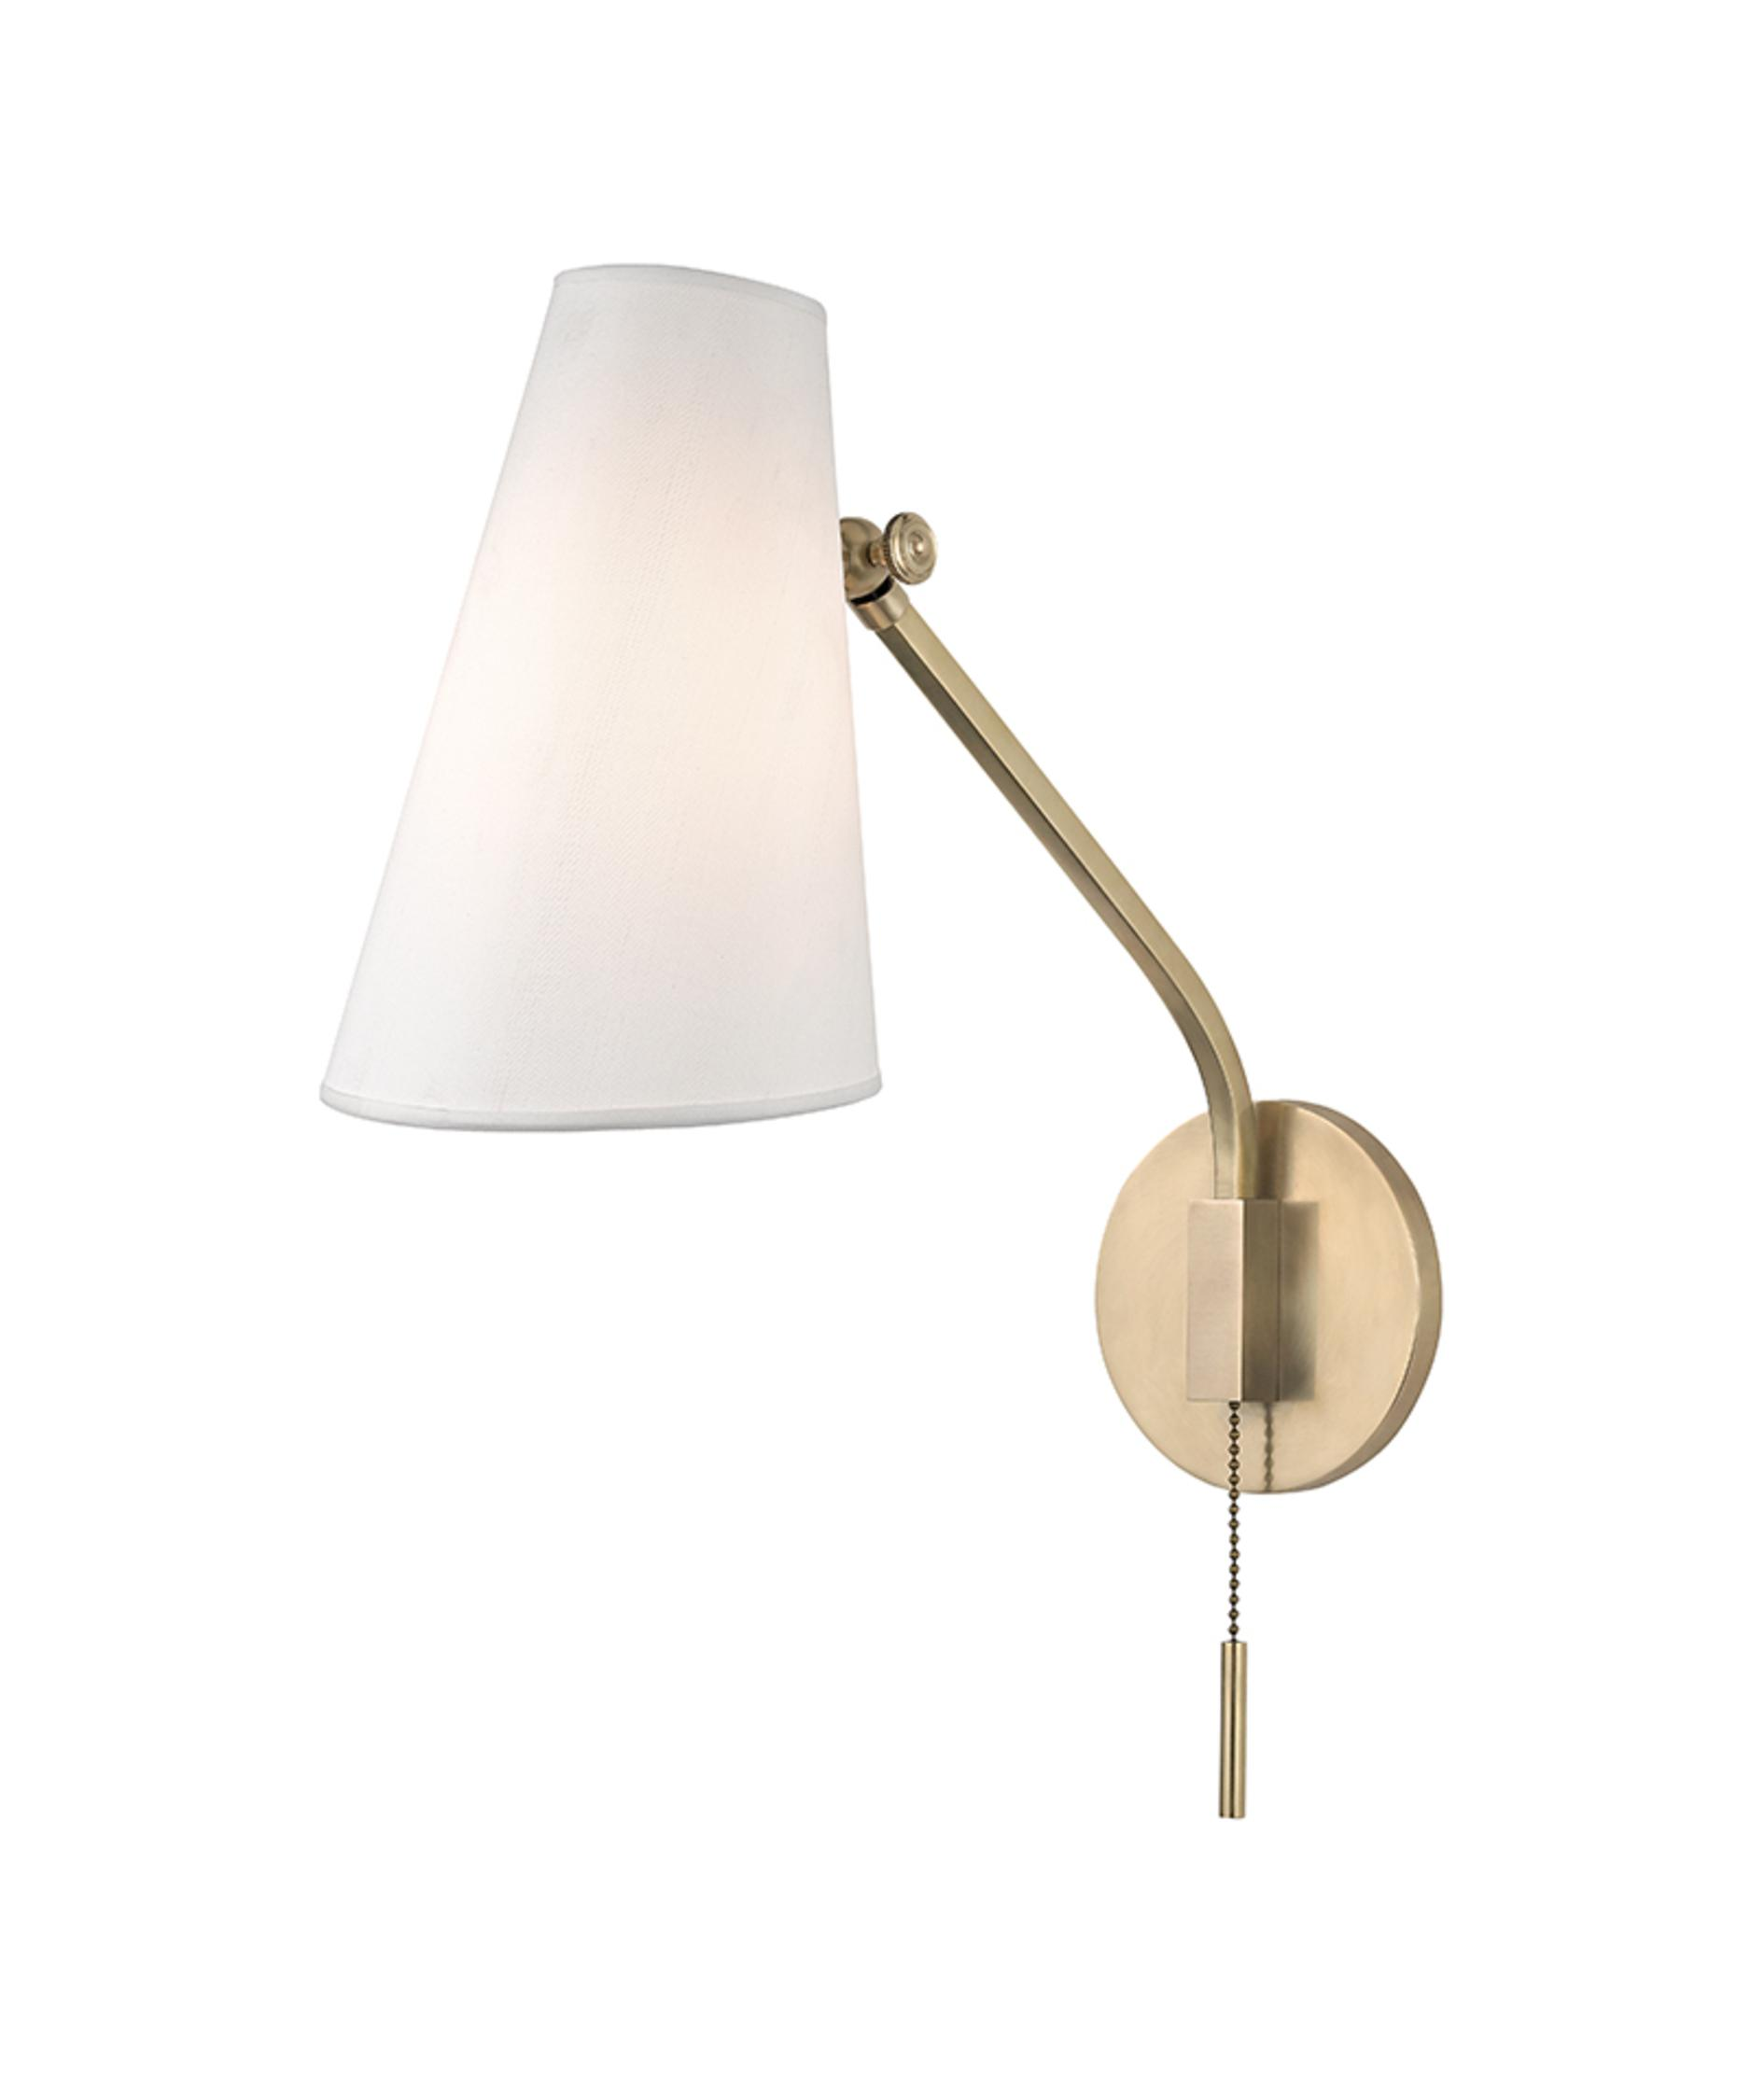 Brighten your bathroom wall sconce with pull chain wall light conclusion aloadofball Gallery